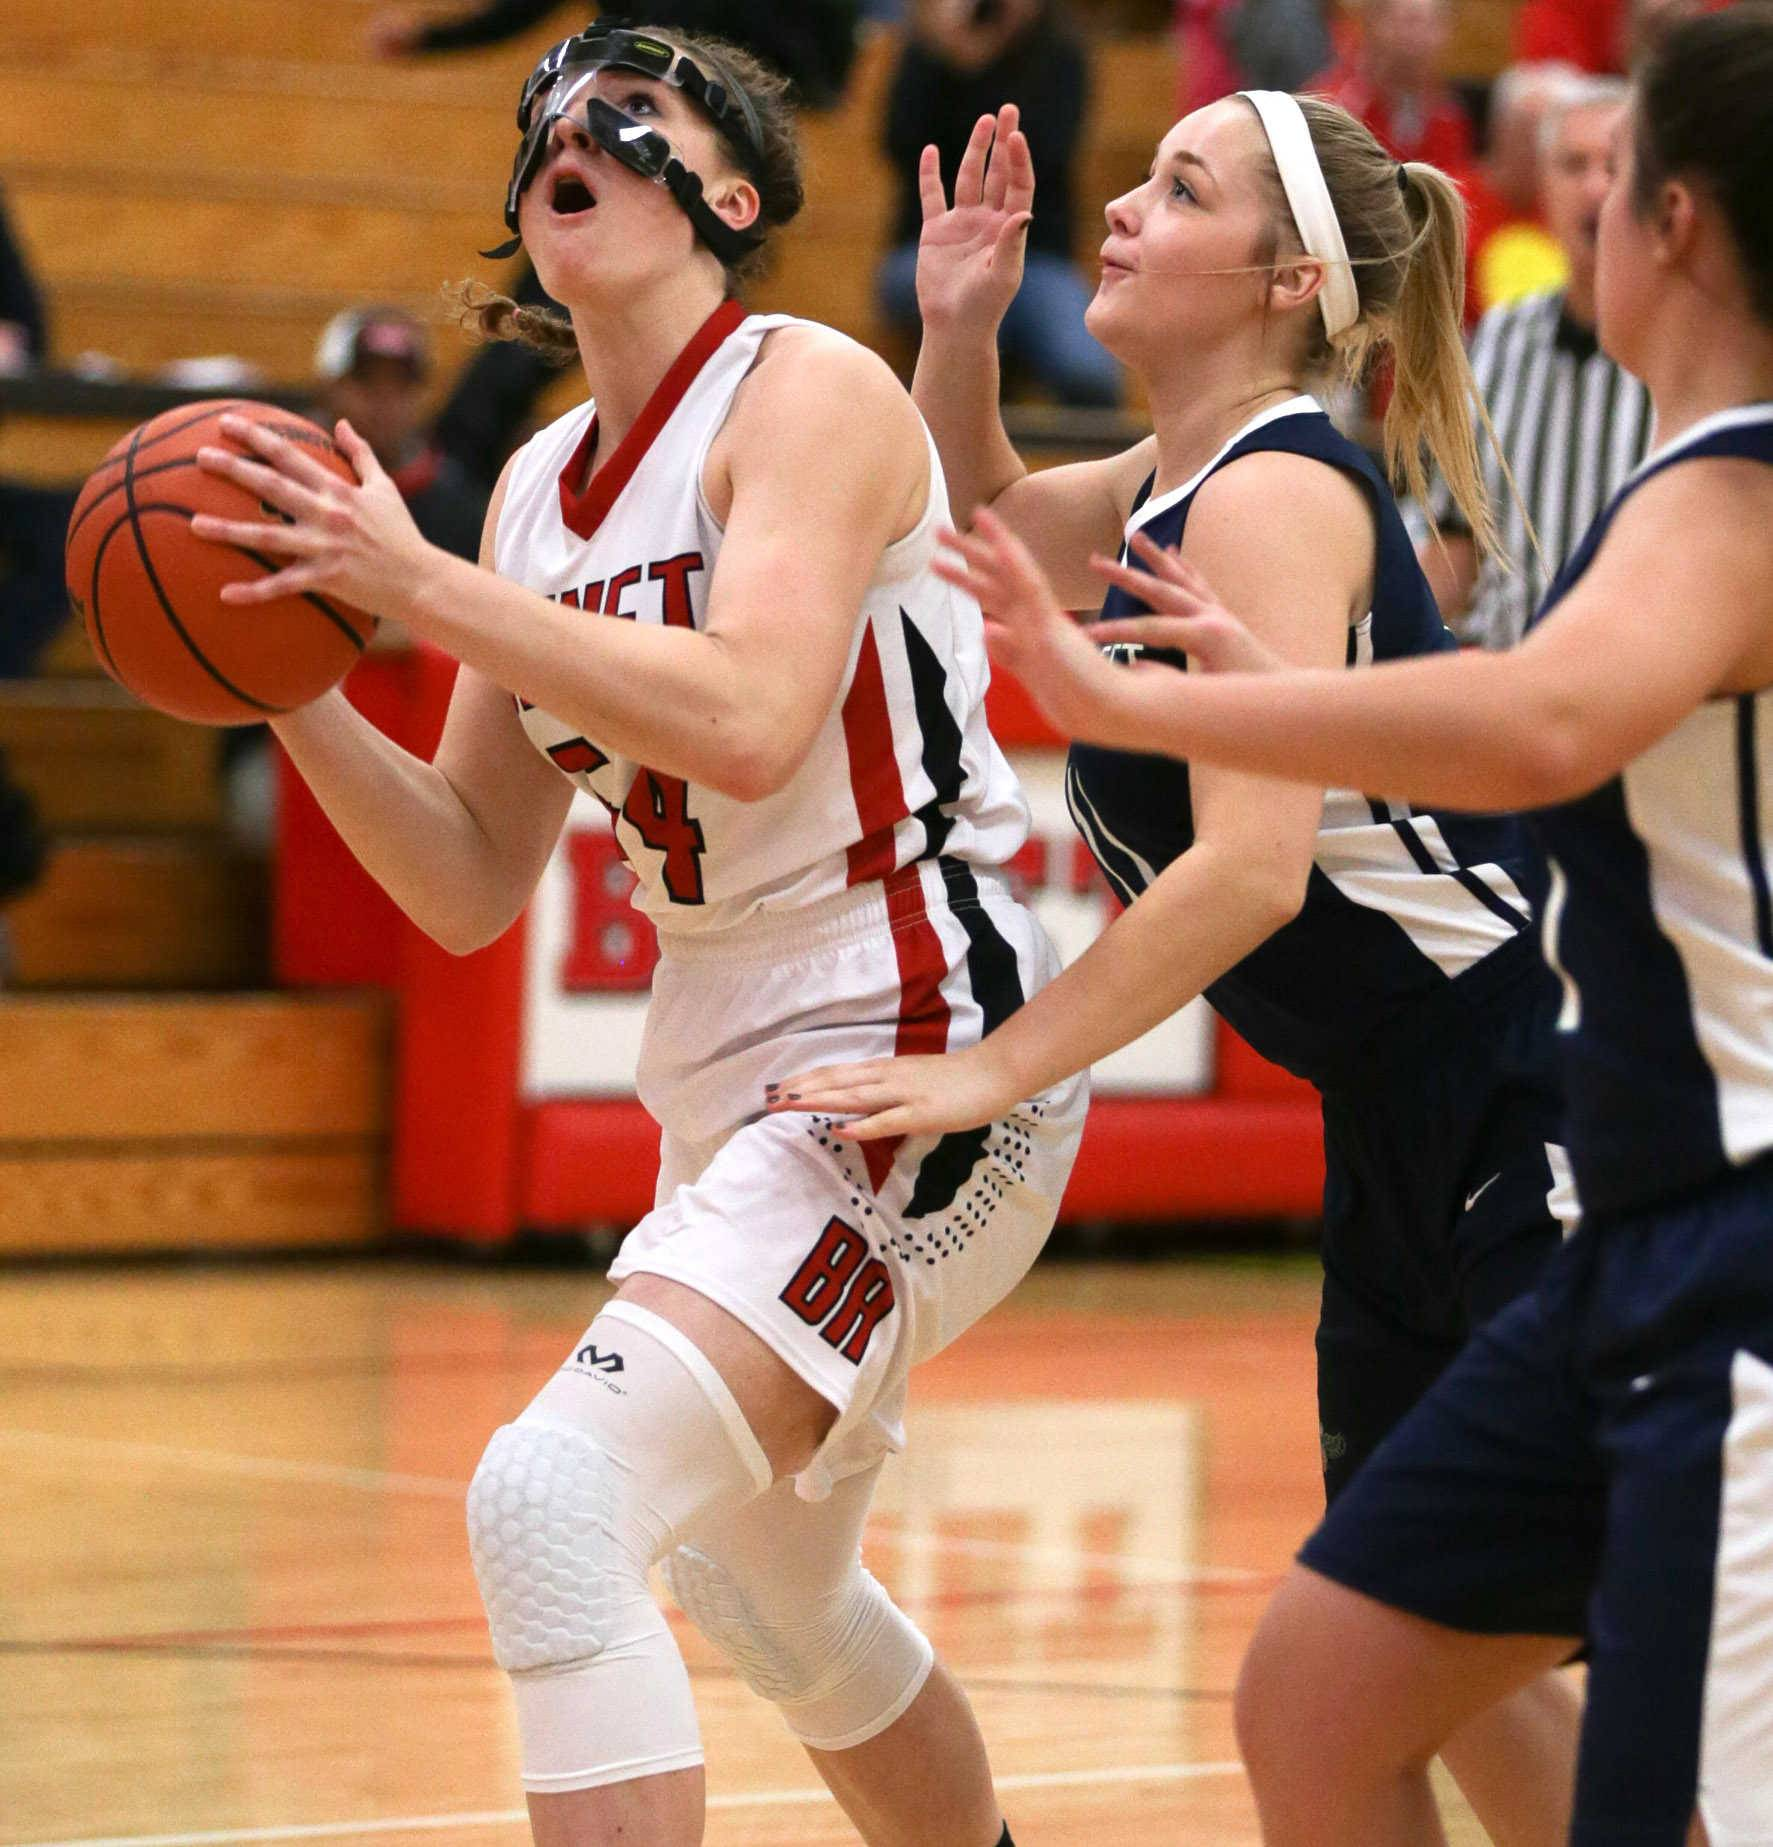 Benet center Katherine Jaseckas (54) plays the post against Bartlett forward Kasia Obrzud (11) at Benet Academy in Lisle, IL on Friday, November 18, 2016